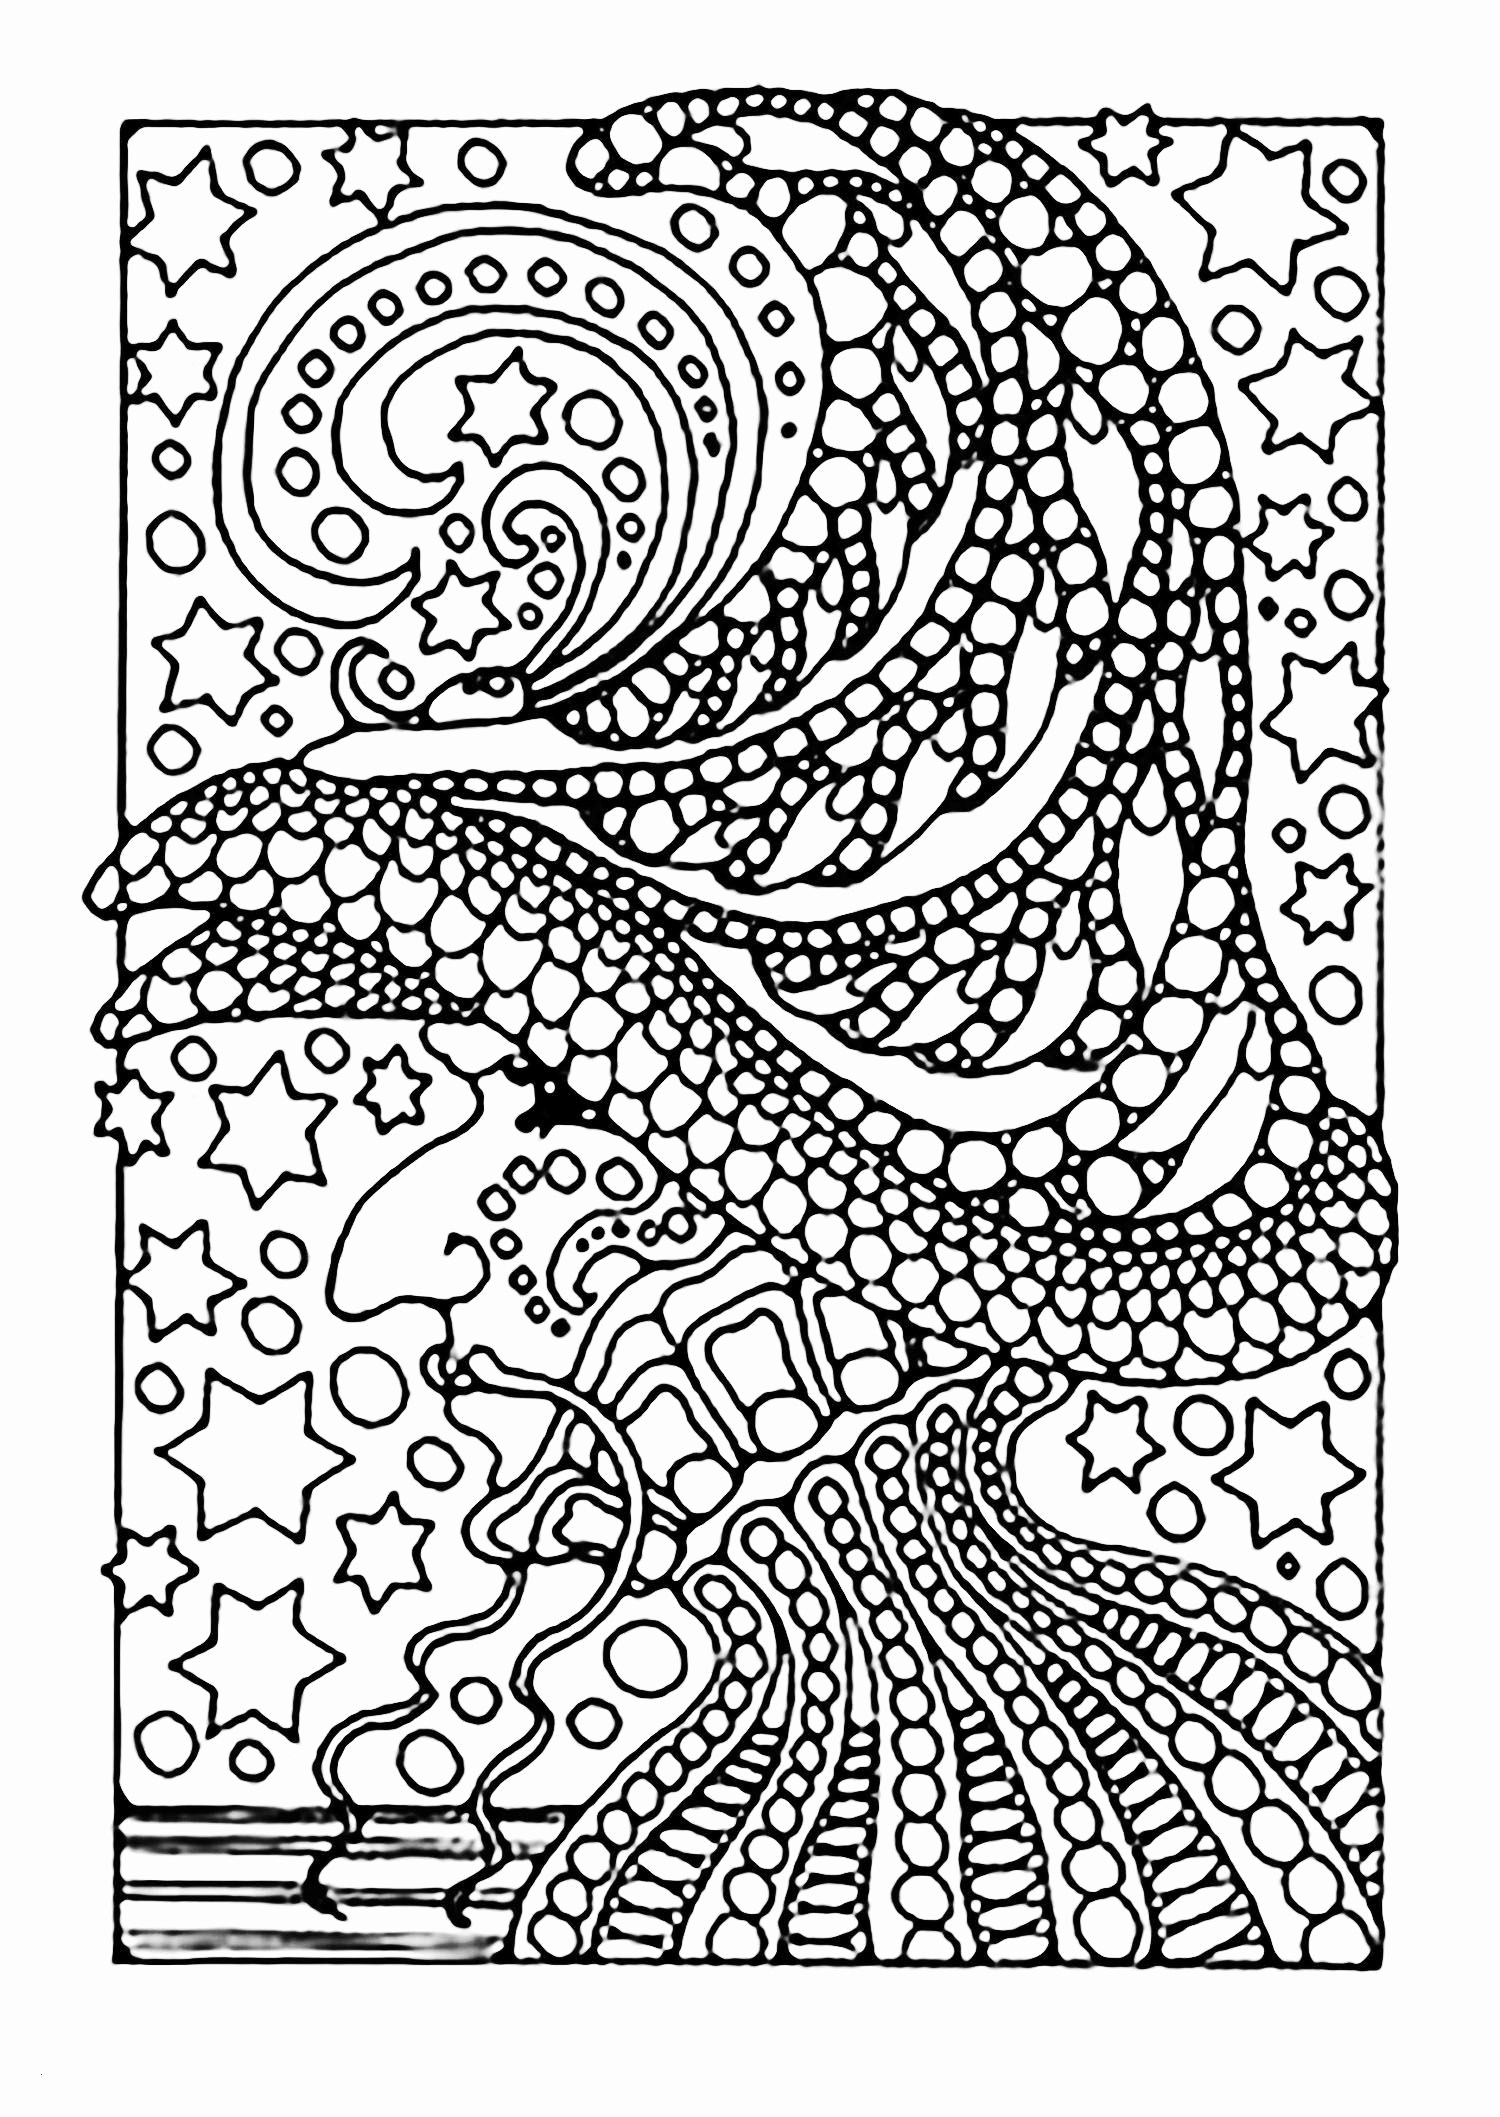 Cool Skull Coloring Pages  Collection 3k - To print for your project